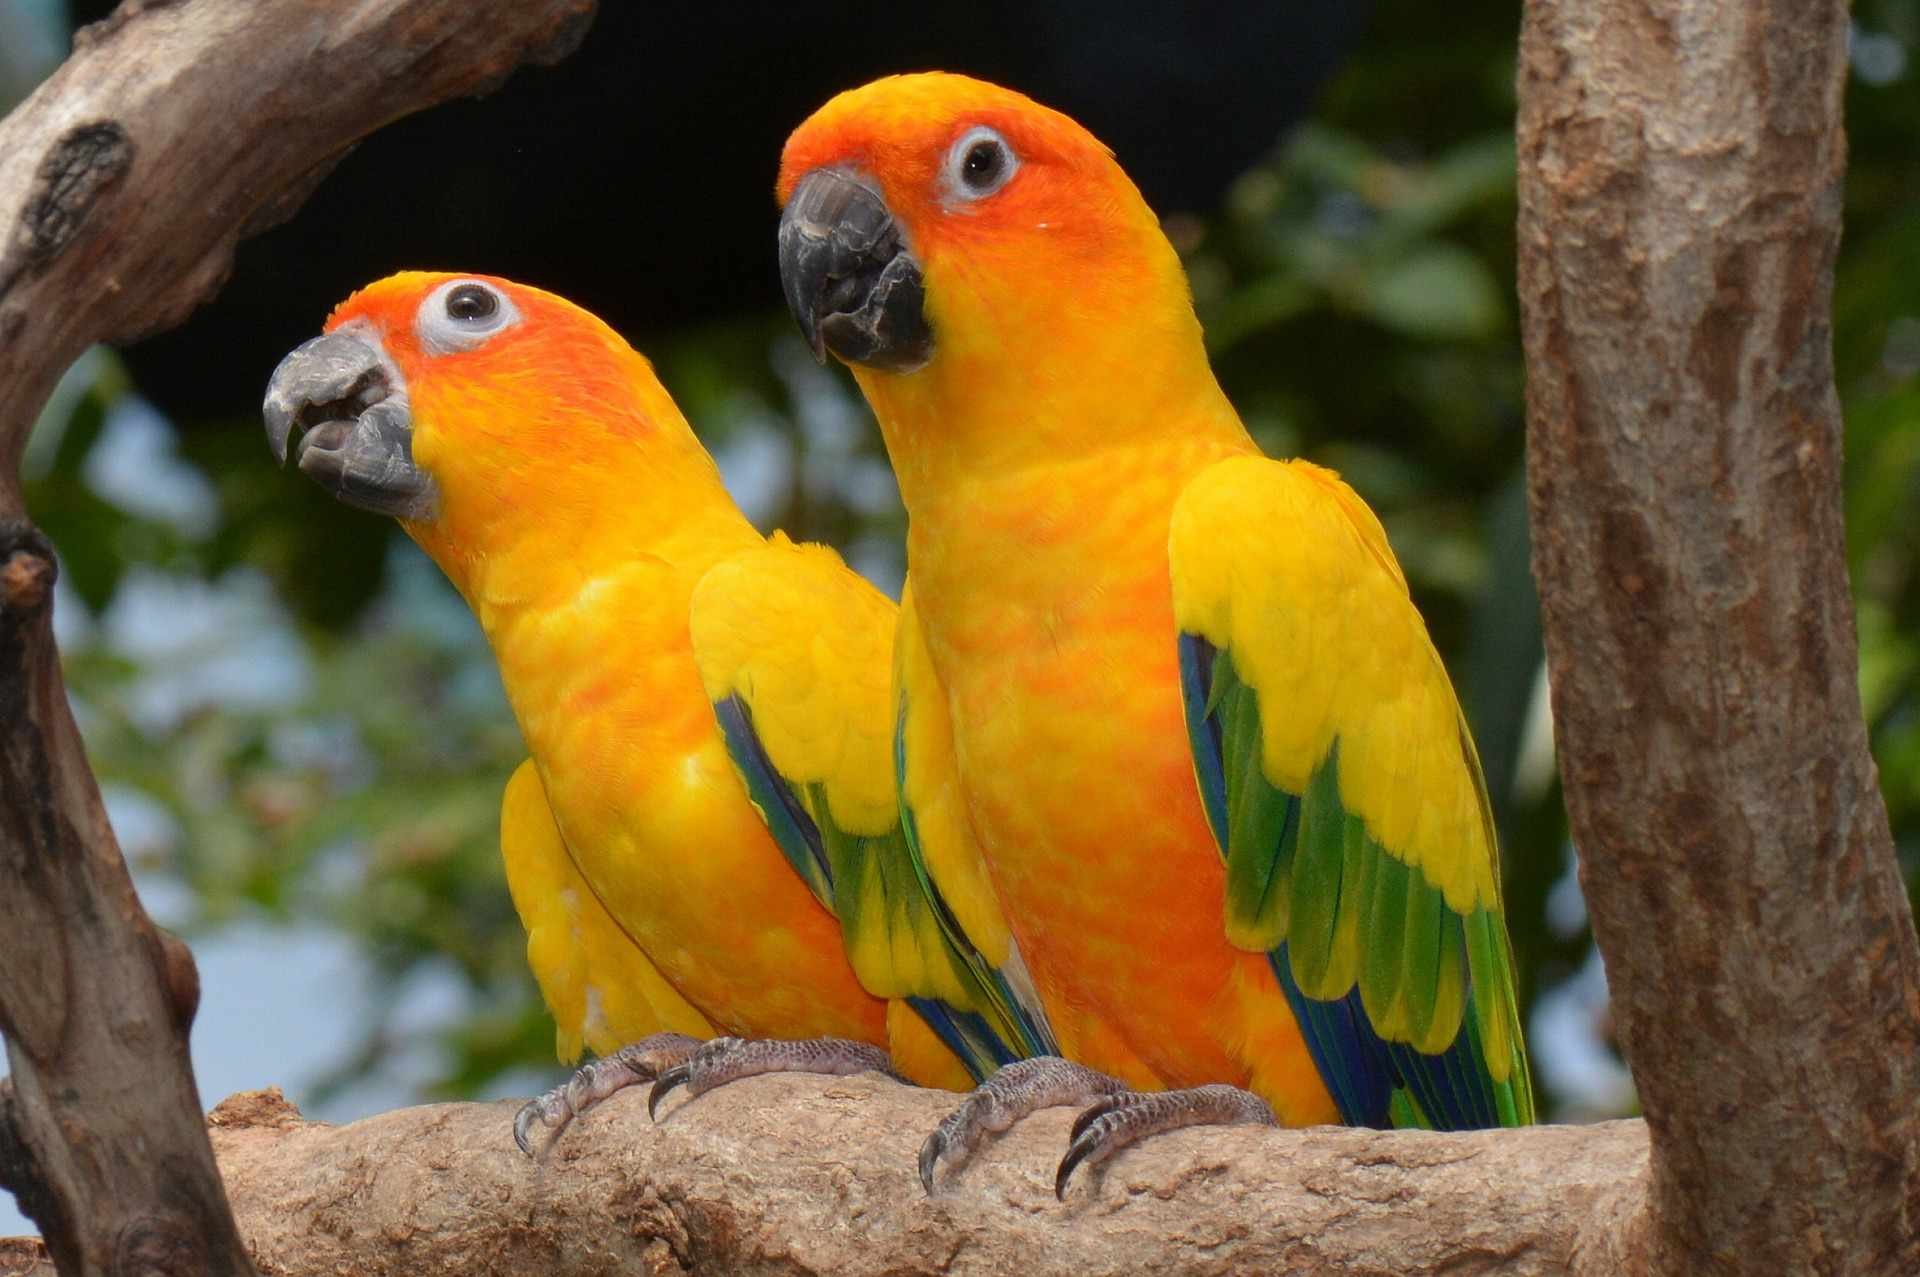 Two sun conures perched in a tree